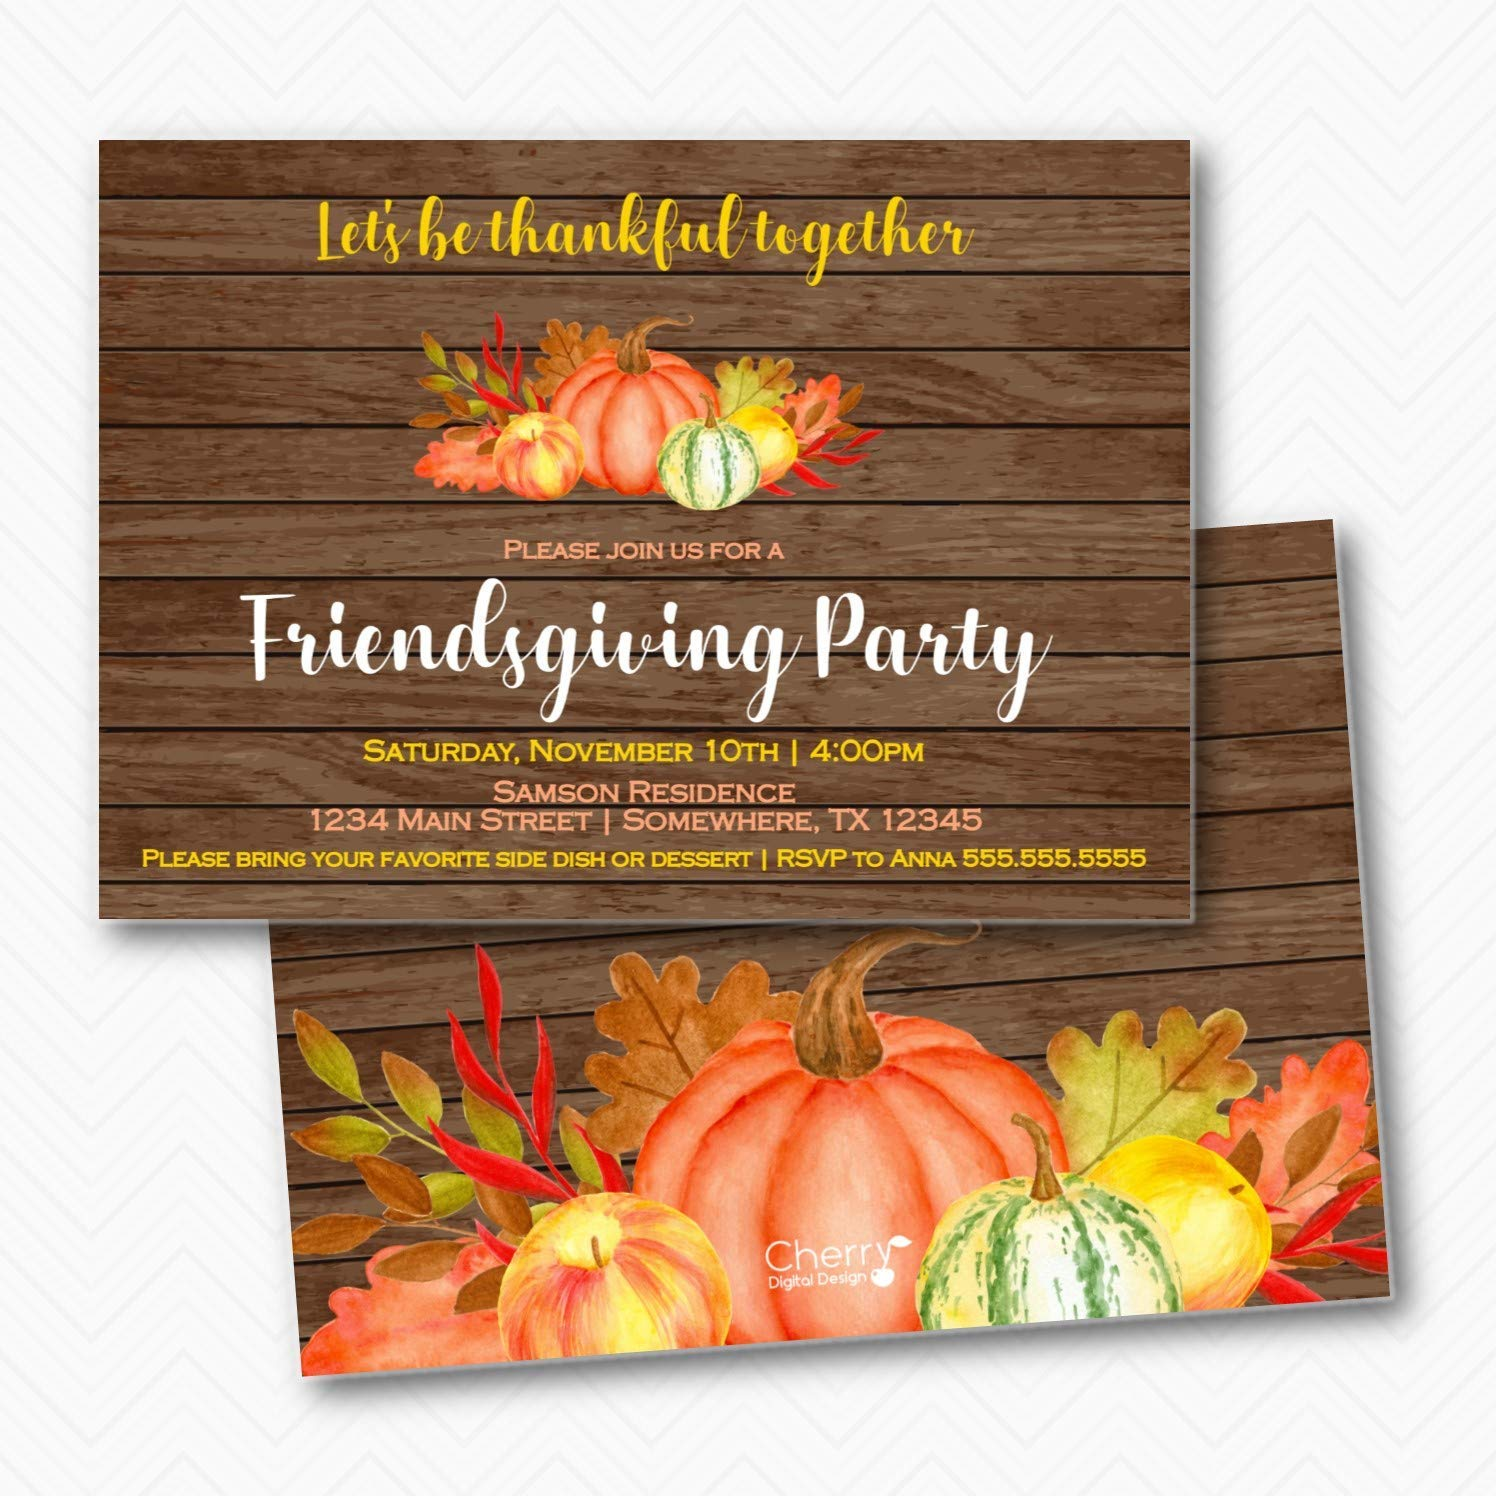 Friendsgiving Rustic Pumpkin Thanksgiving Invitations with Max 72% Limited price sale OFF Party